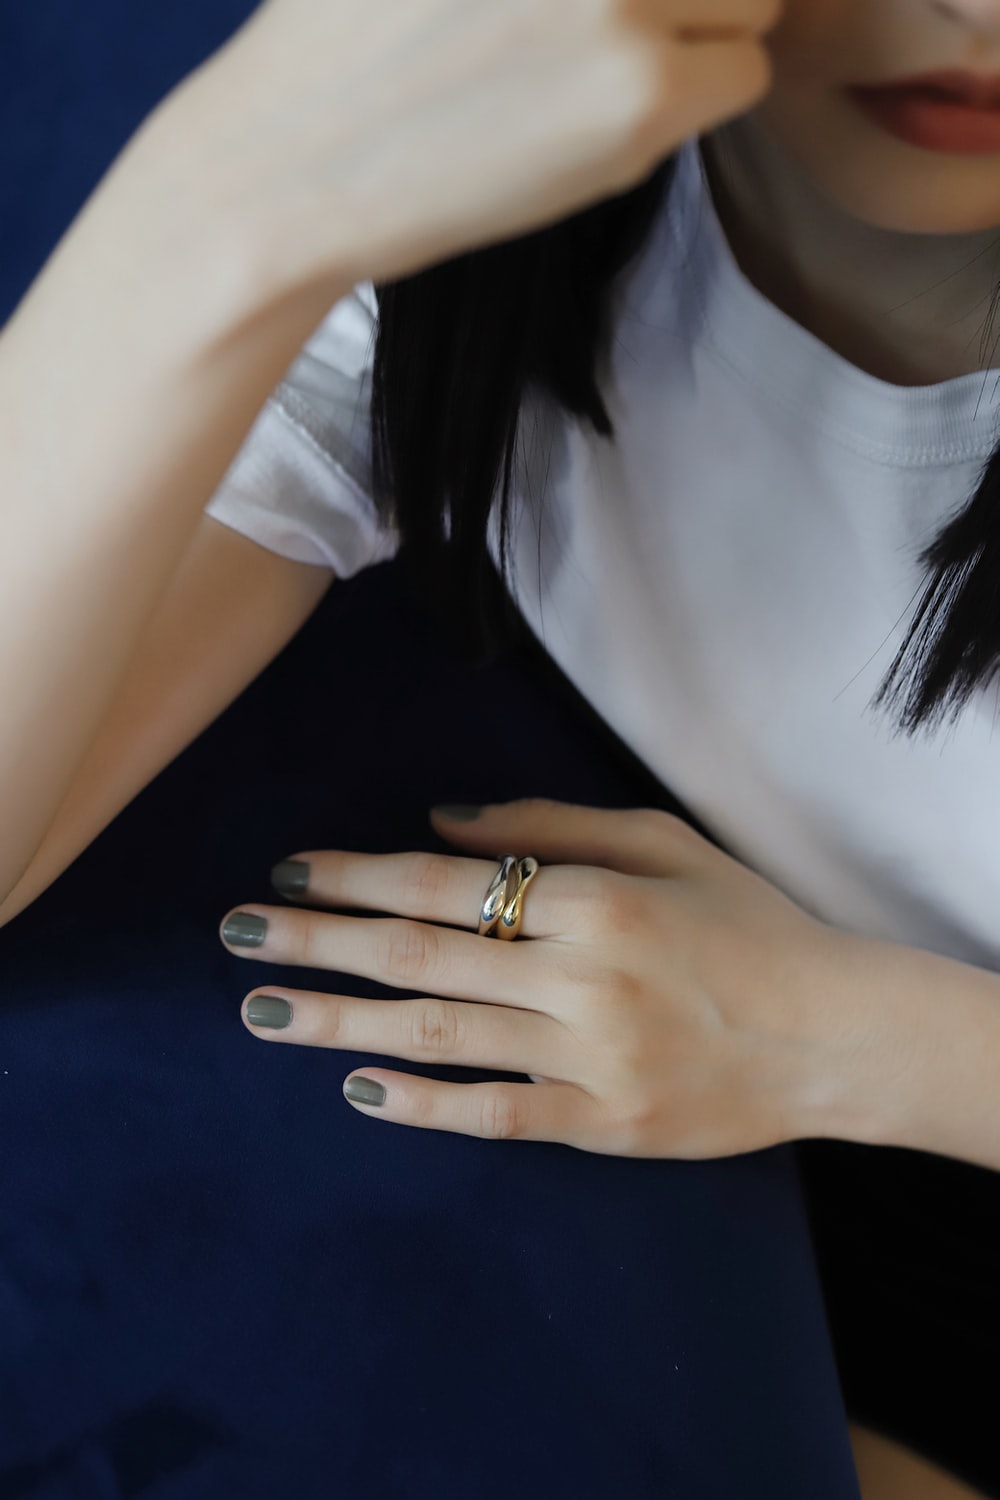 woman in white v neck shirt wearing gold ring